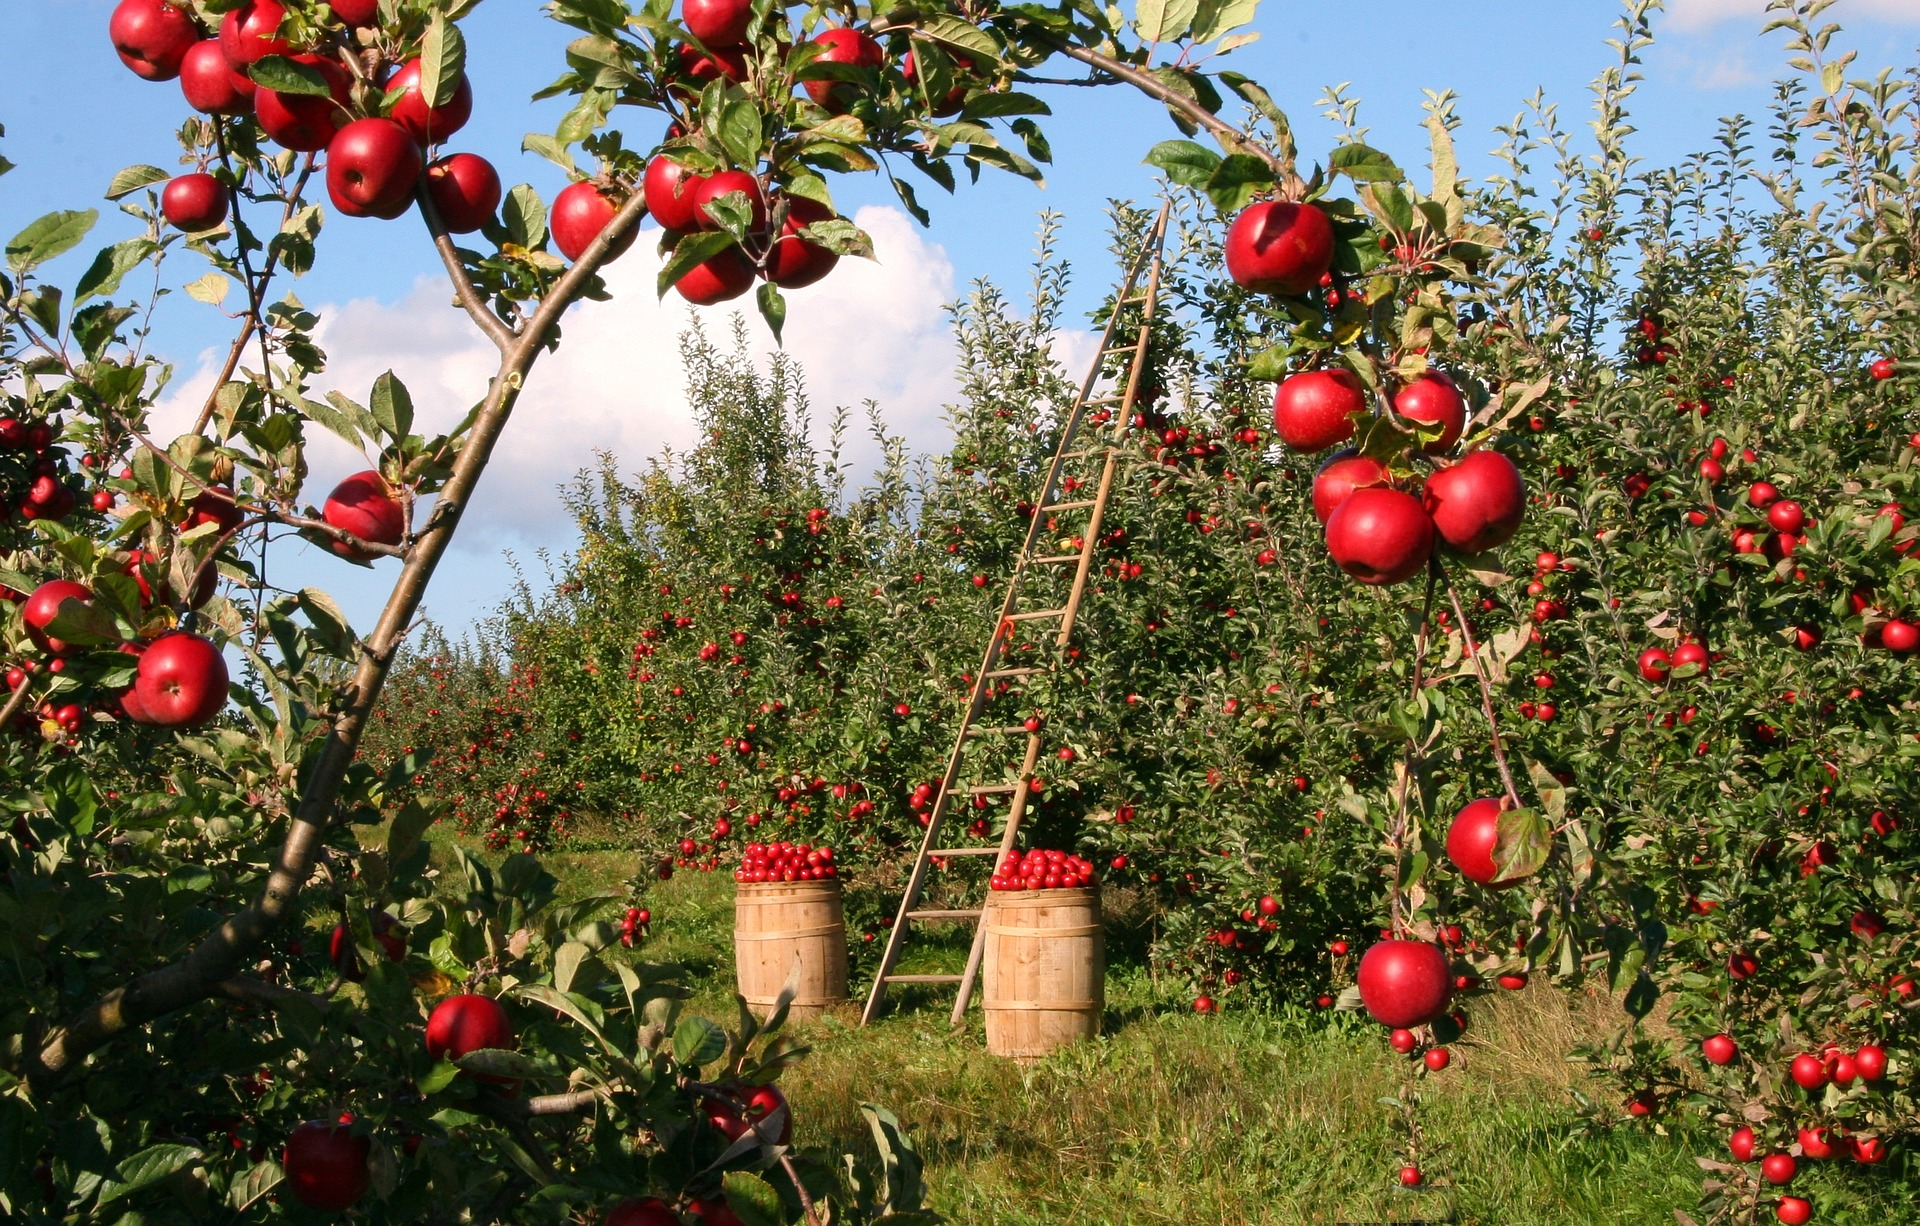 file/ELEMENTO_NEWSLETTER/20216/Agricoltura_mele_apple-1873078_1920.jpg